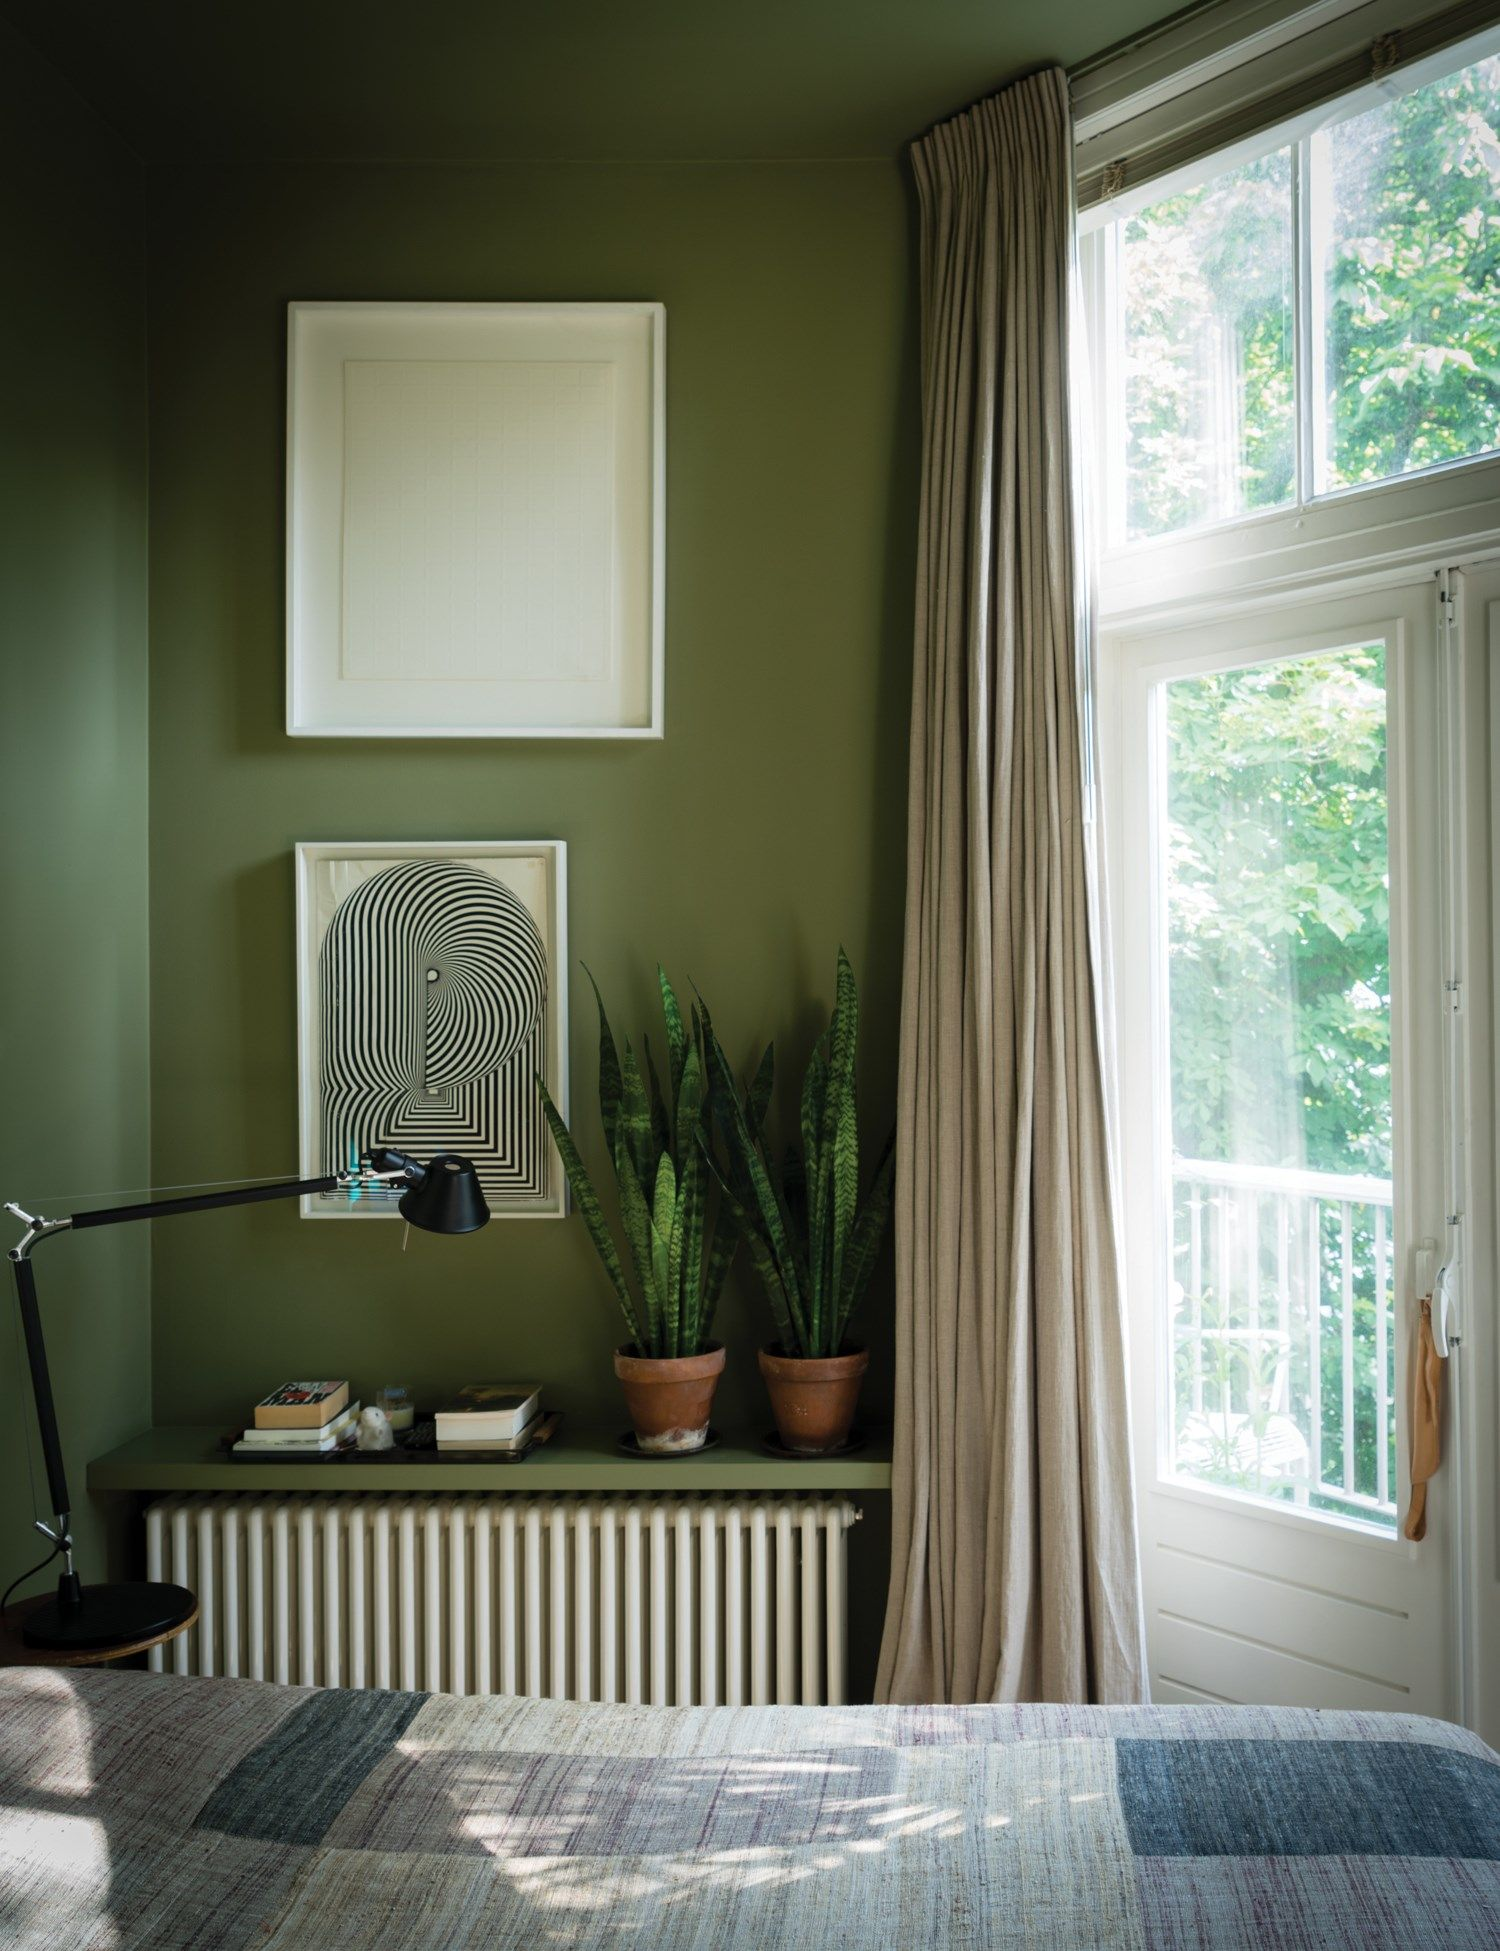 Bedroom With Images Room Inspiration Bedroom Olive Green Bedrooms Bedroom Inspirations